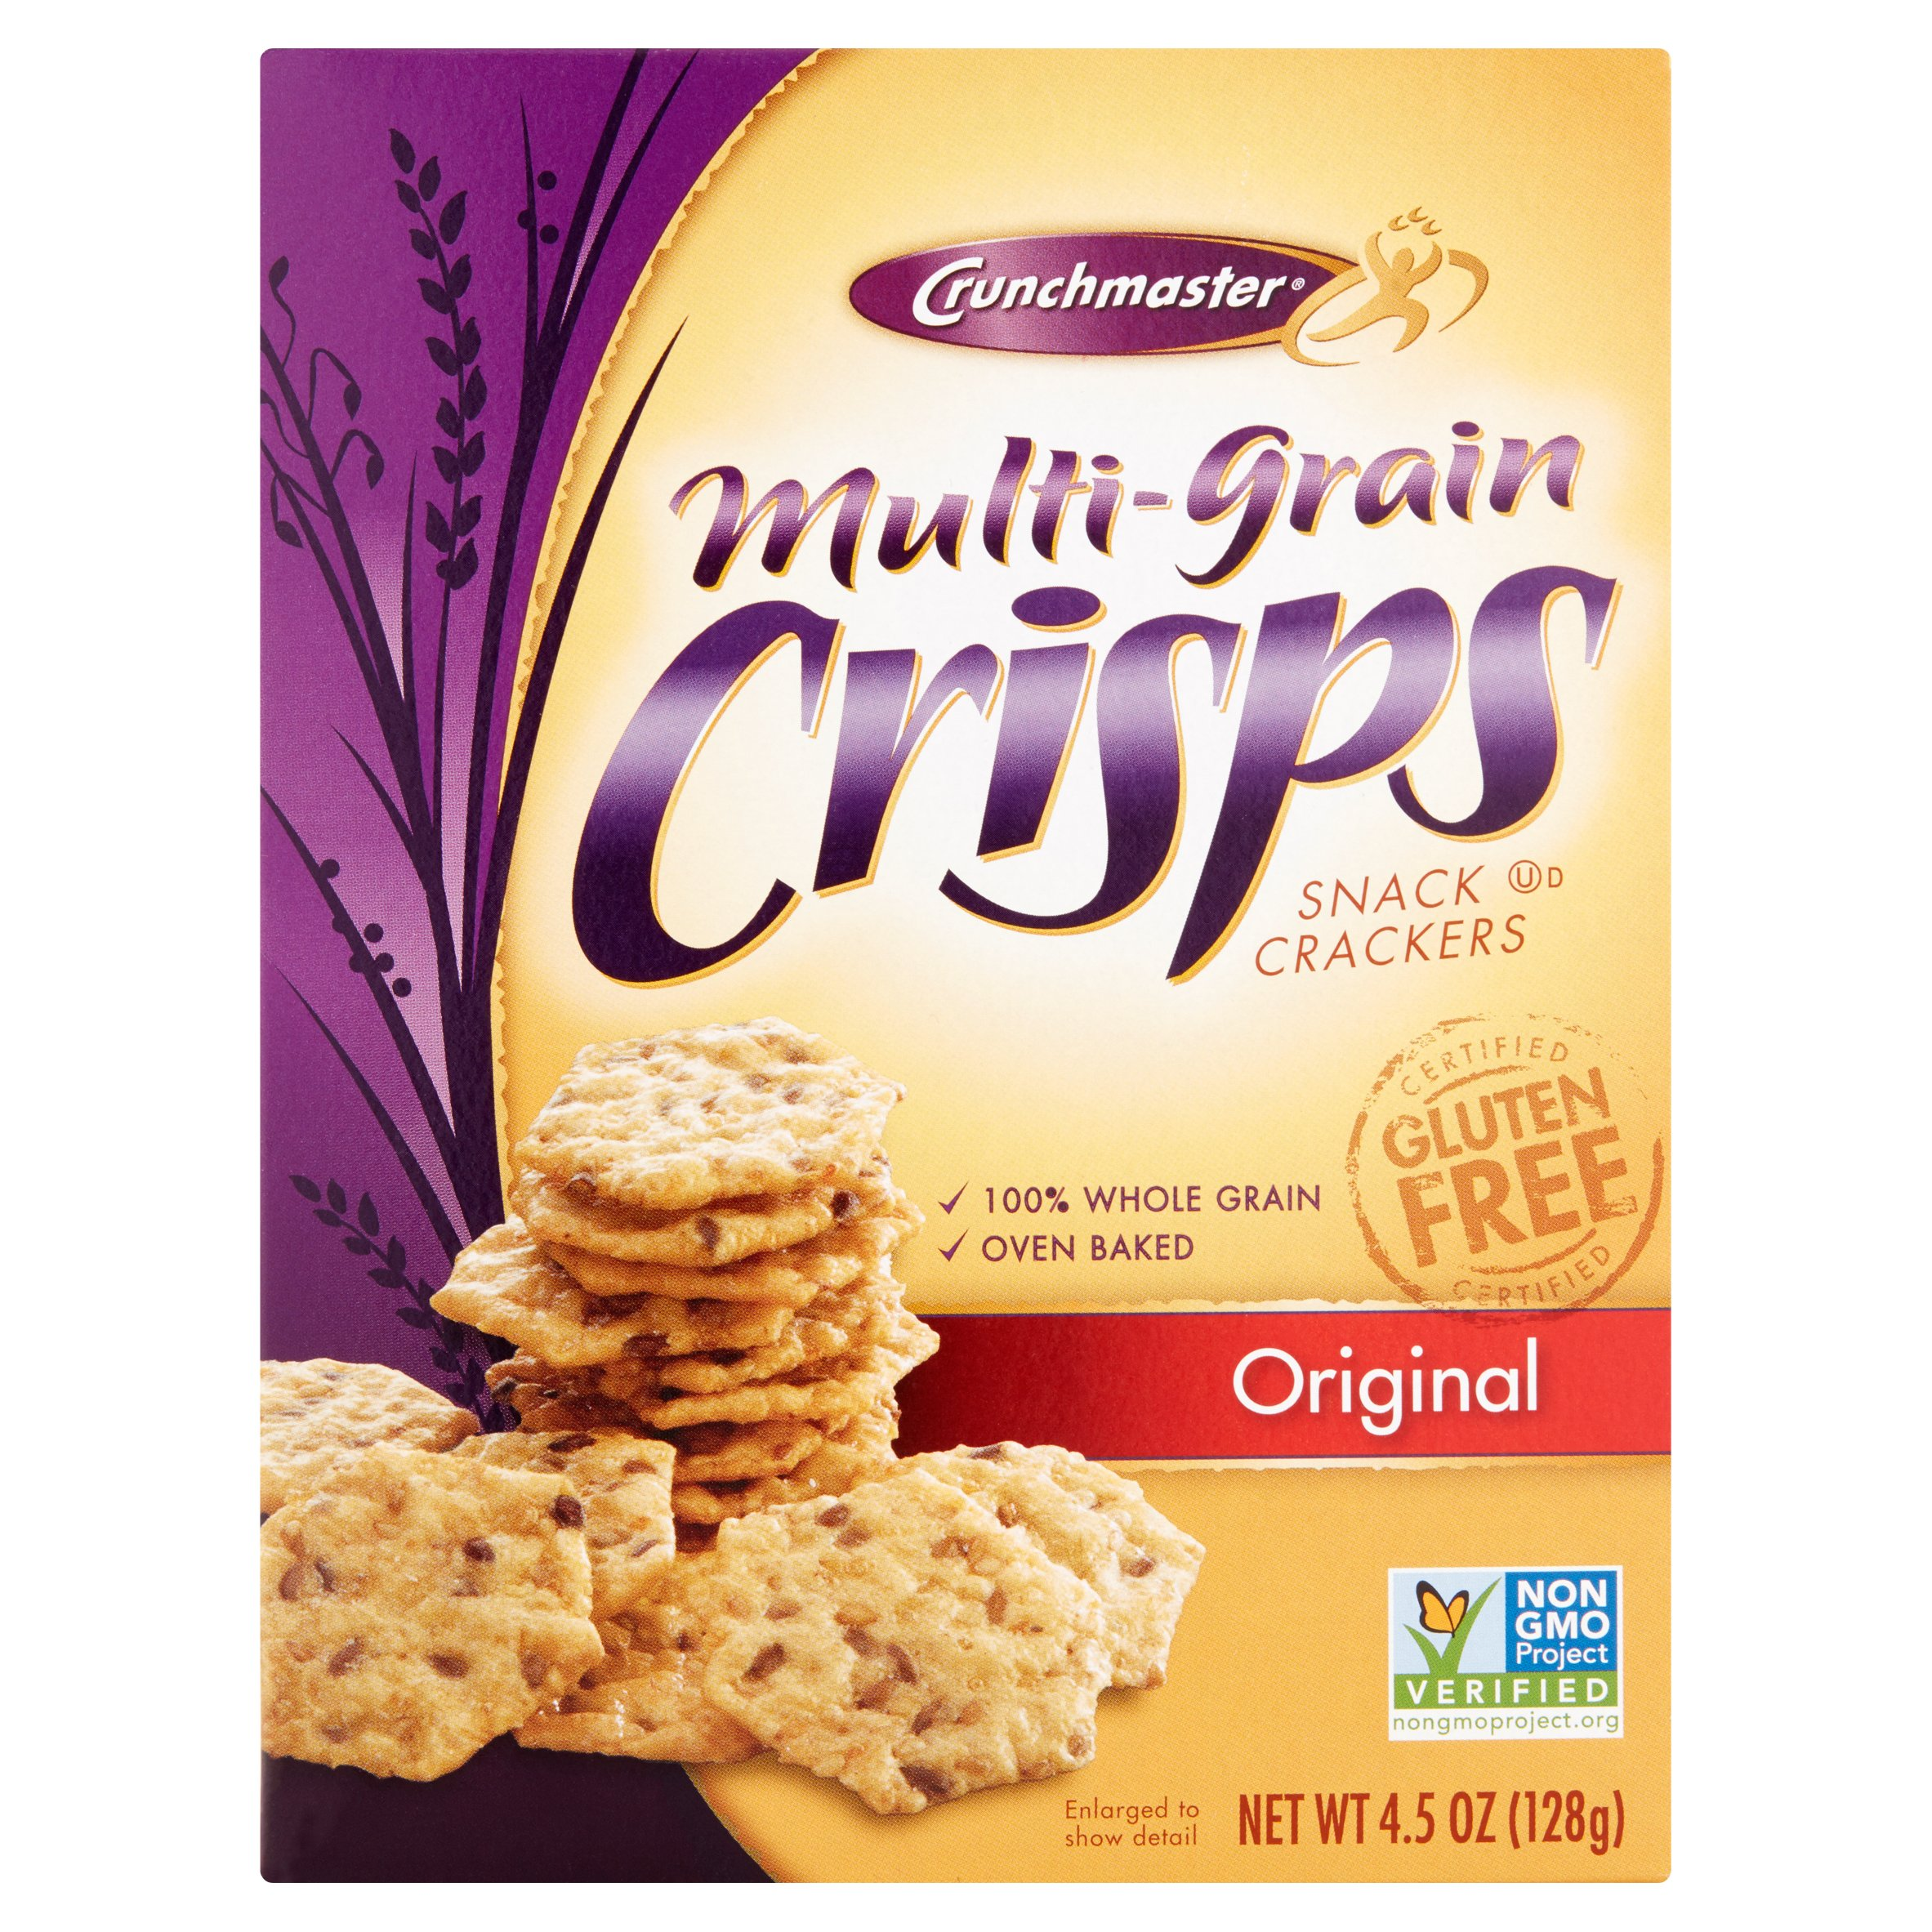 Crunchmaster Original Multi Grain Crisps Crackers, 4.5 oz by TH Foods, Inc.,